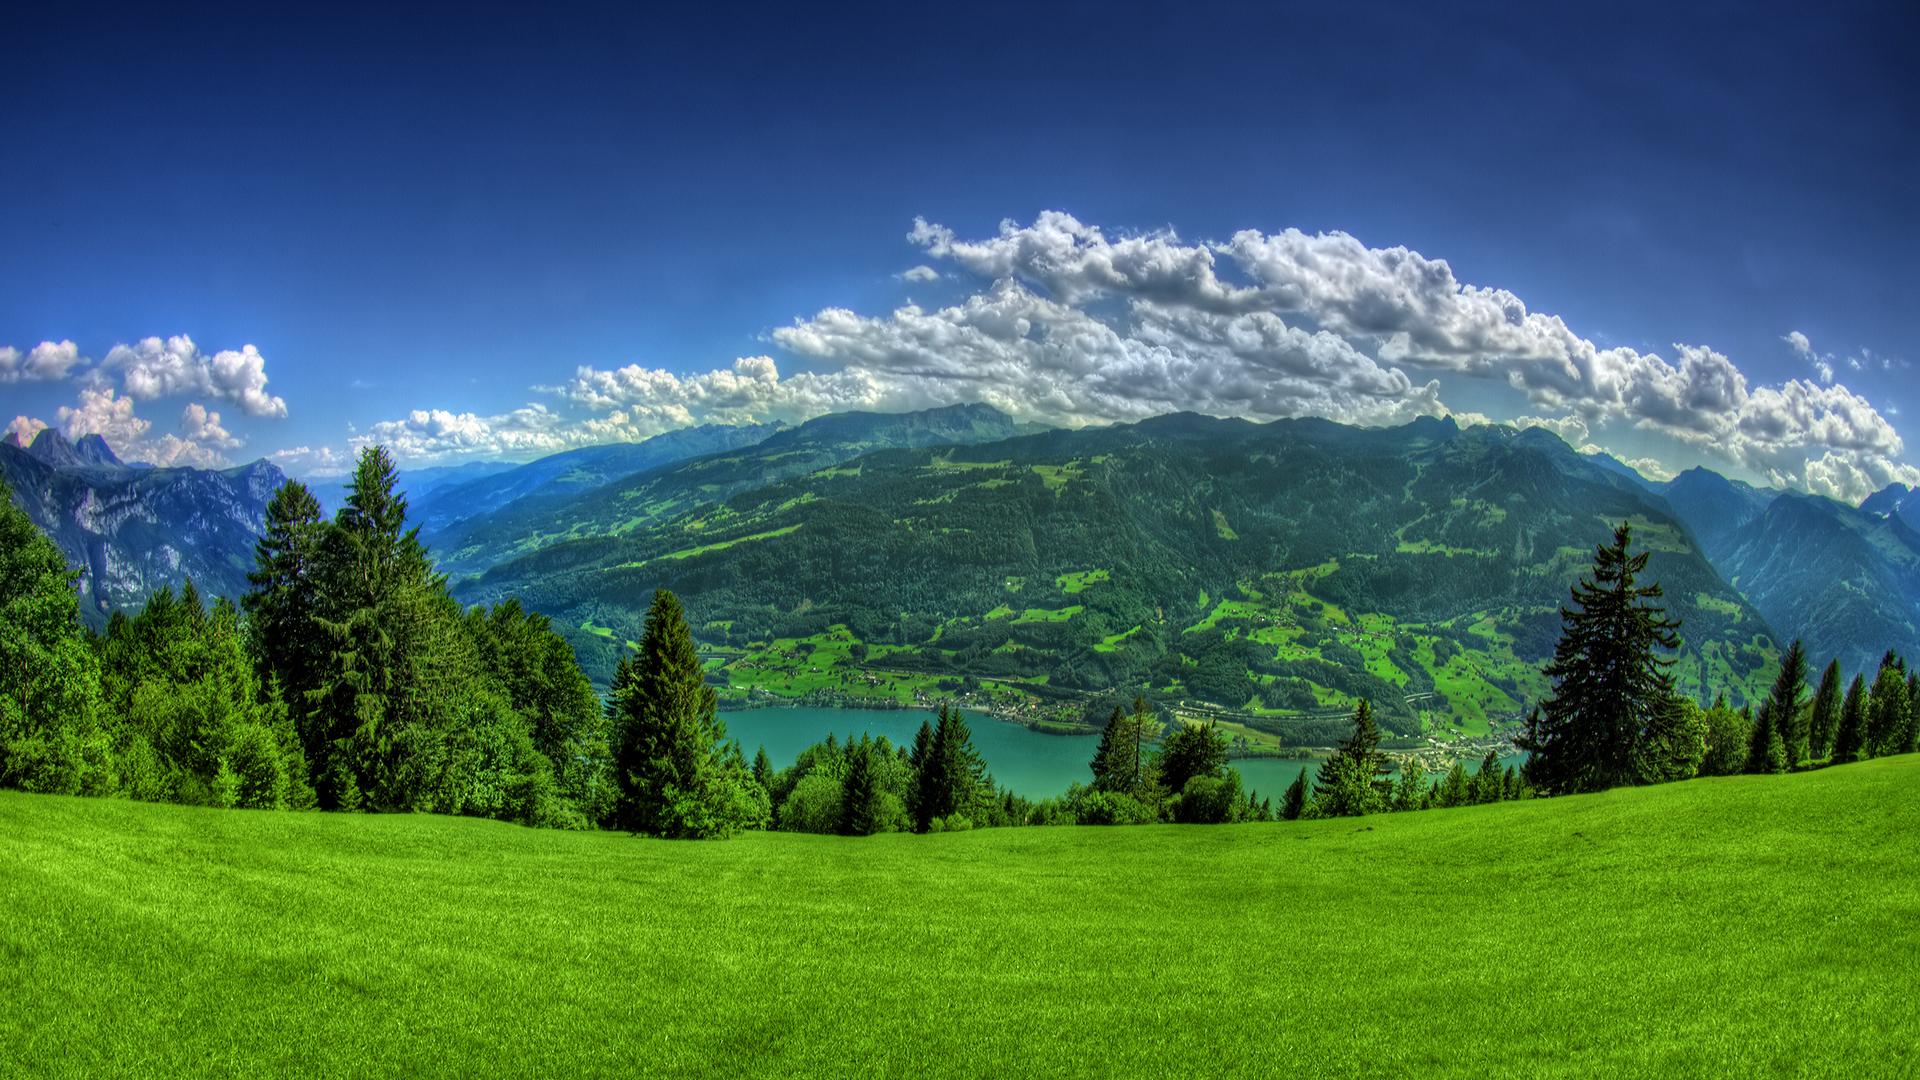 nature wallpaper full hd 1920 1080 005 1920x1080